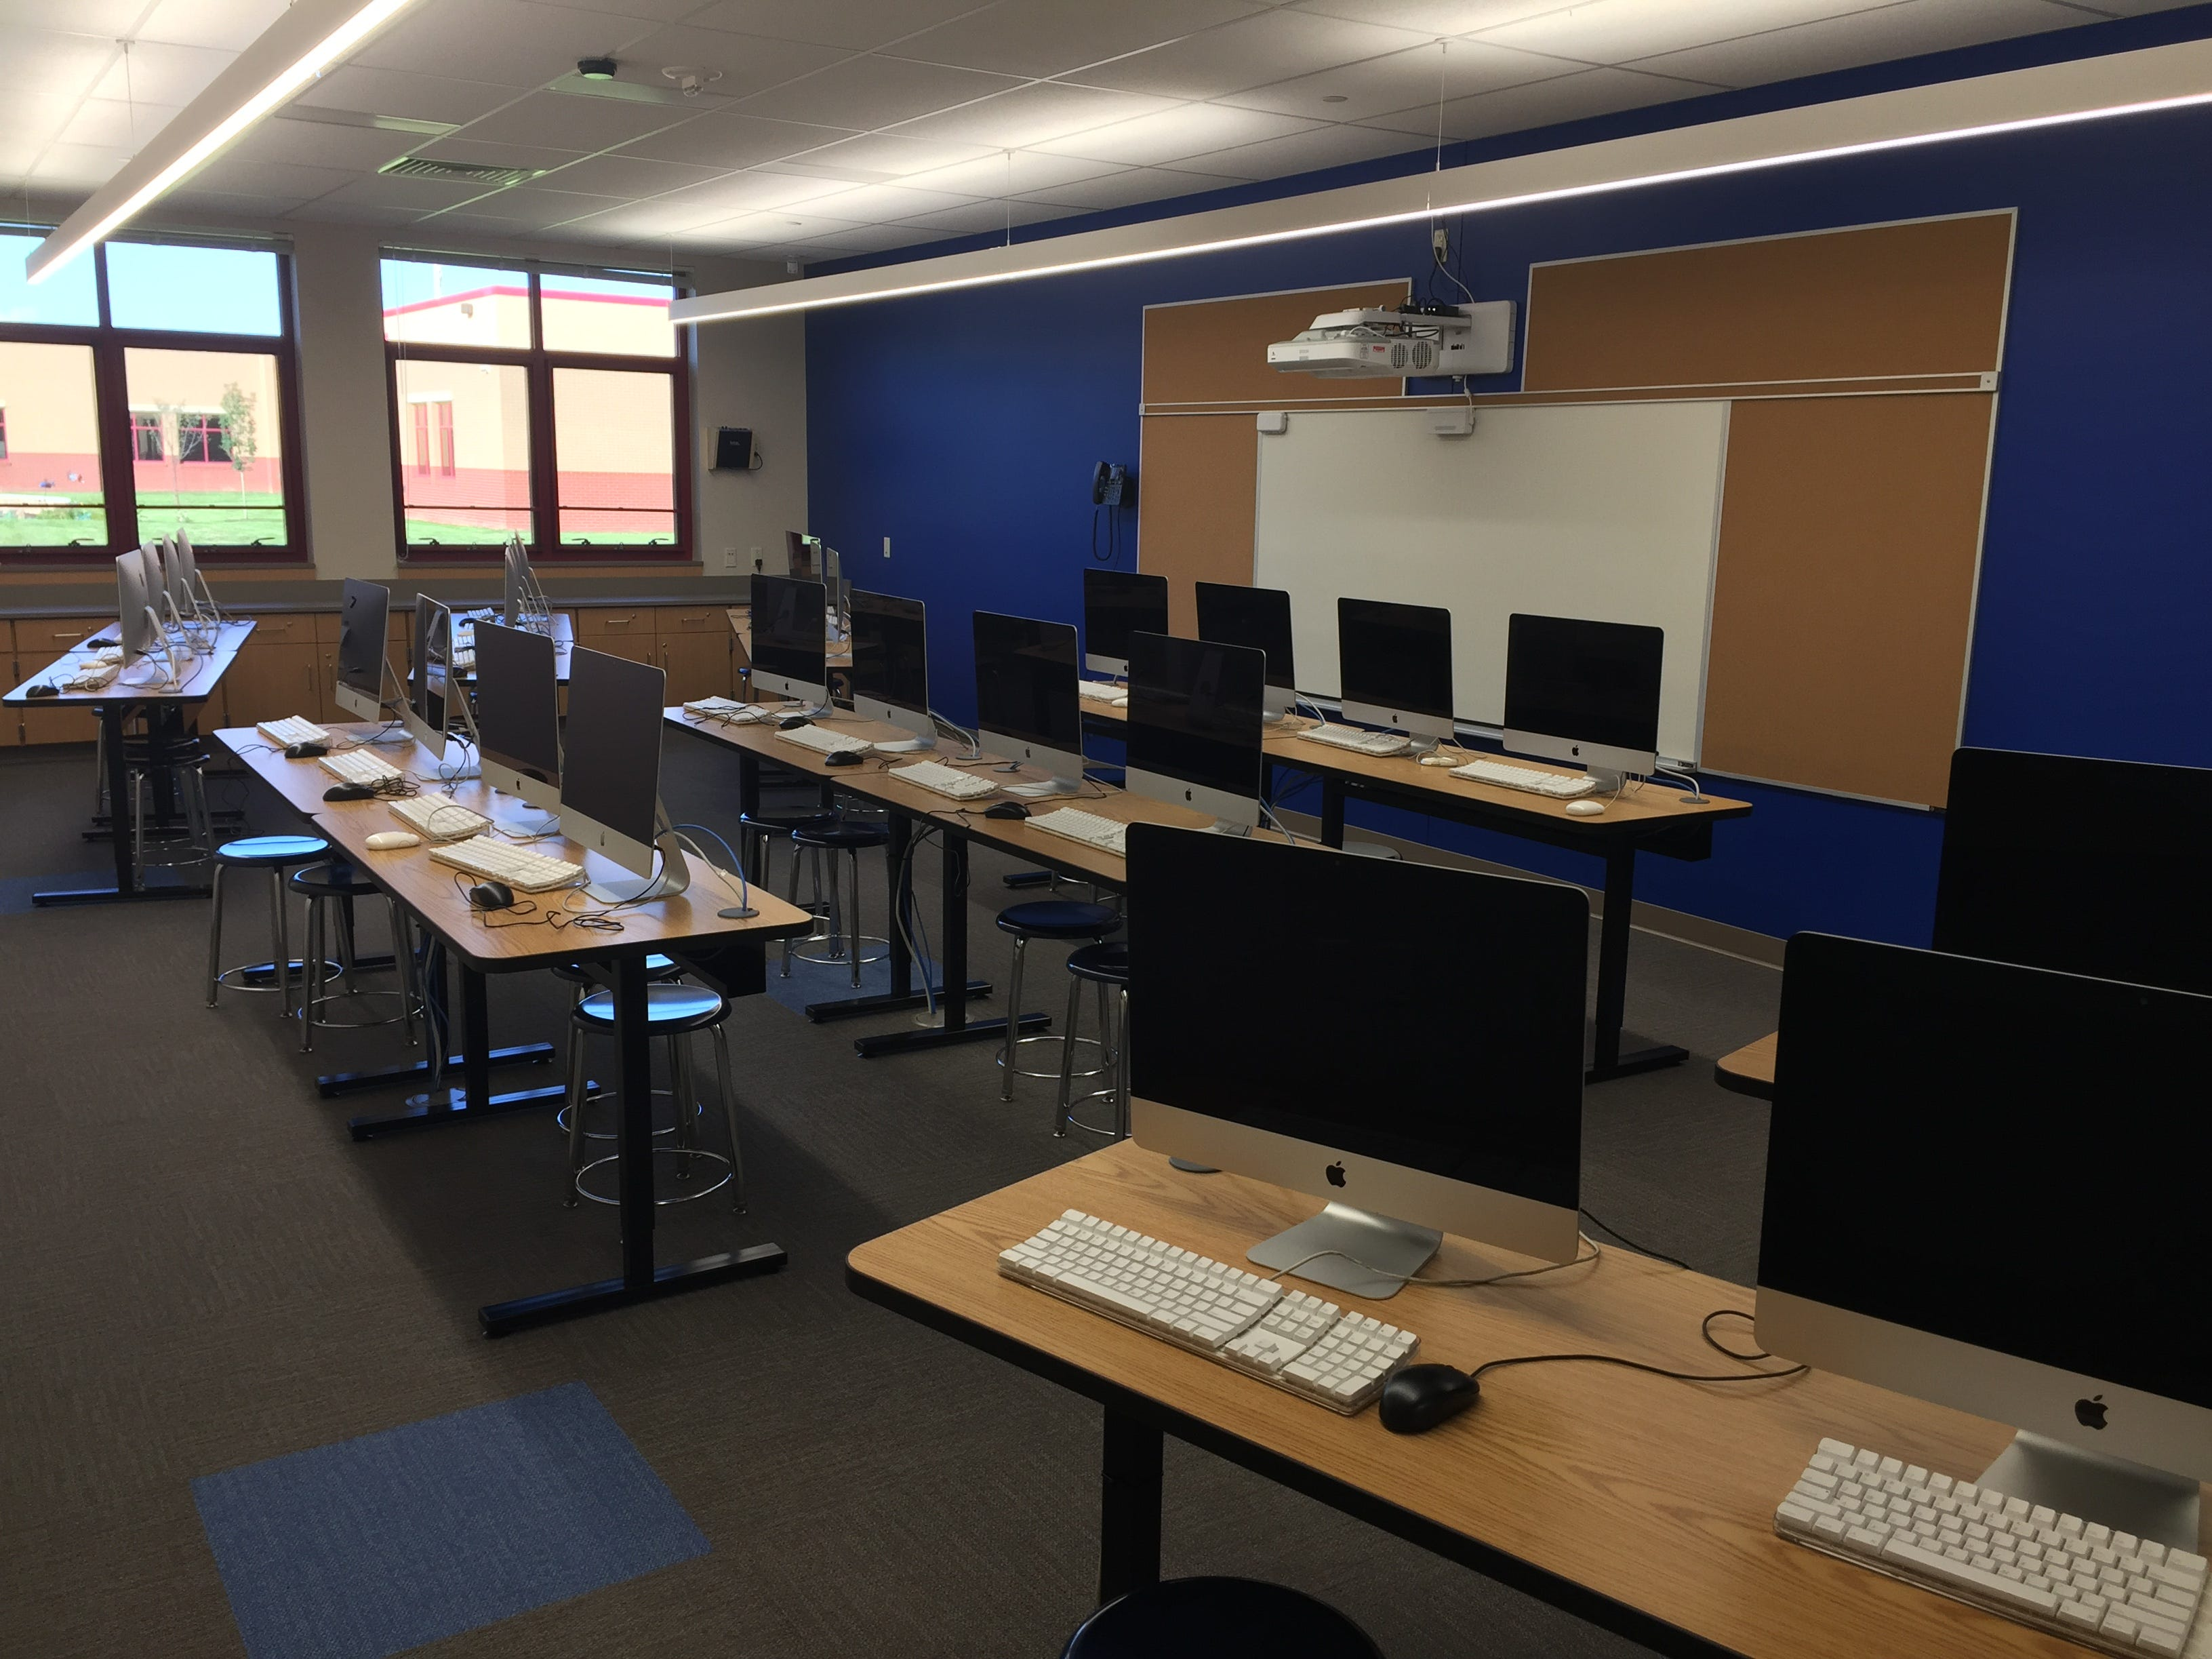 One of two computer labs in the new Northwest Elementary School Aug. 23, 2018. Each lab offers 30 computers for student use and an interactive overhead projection system for teachers.